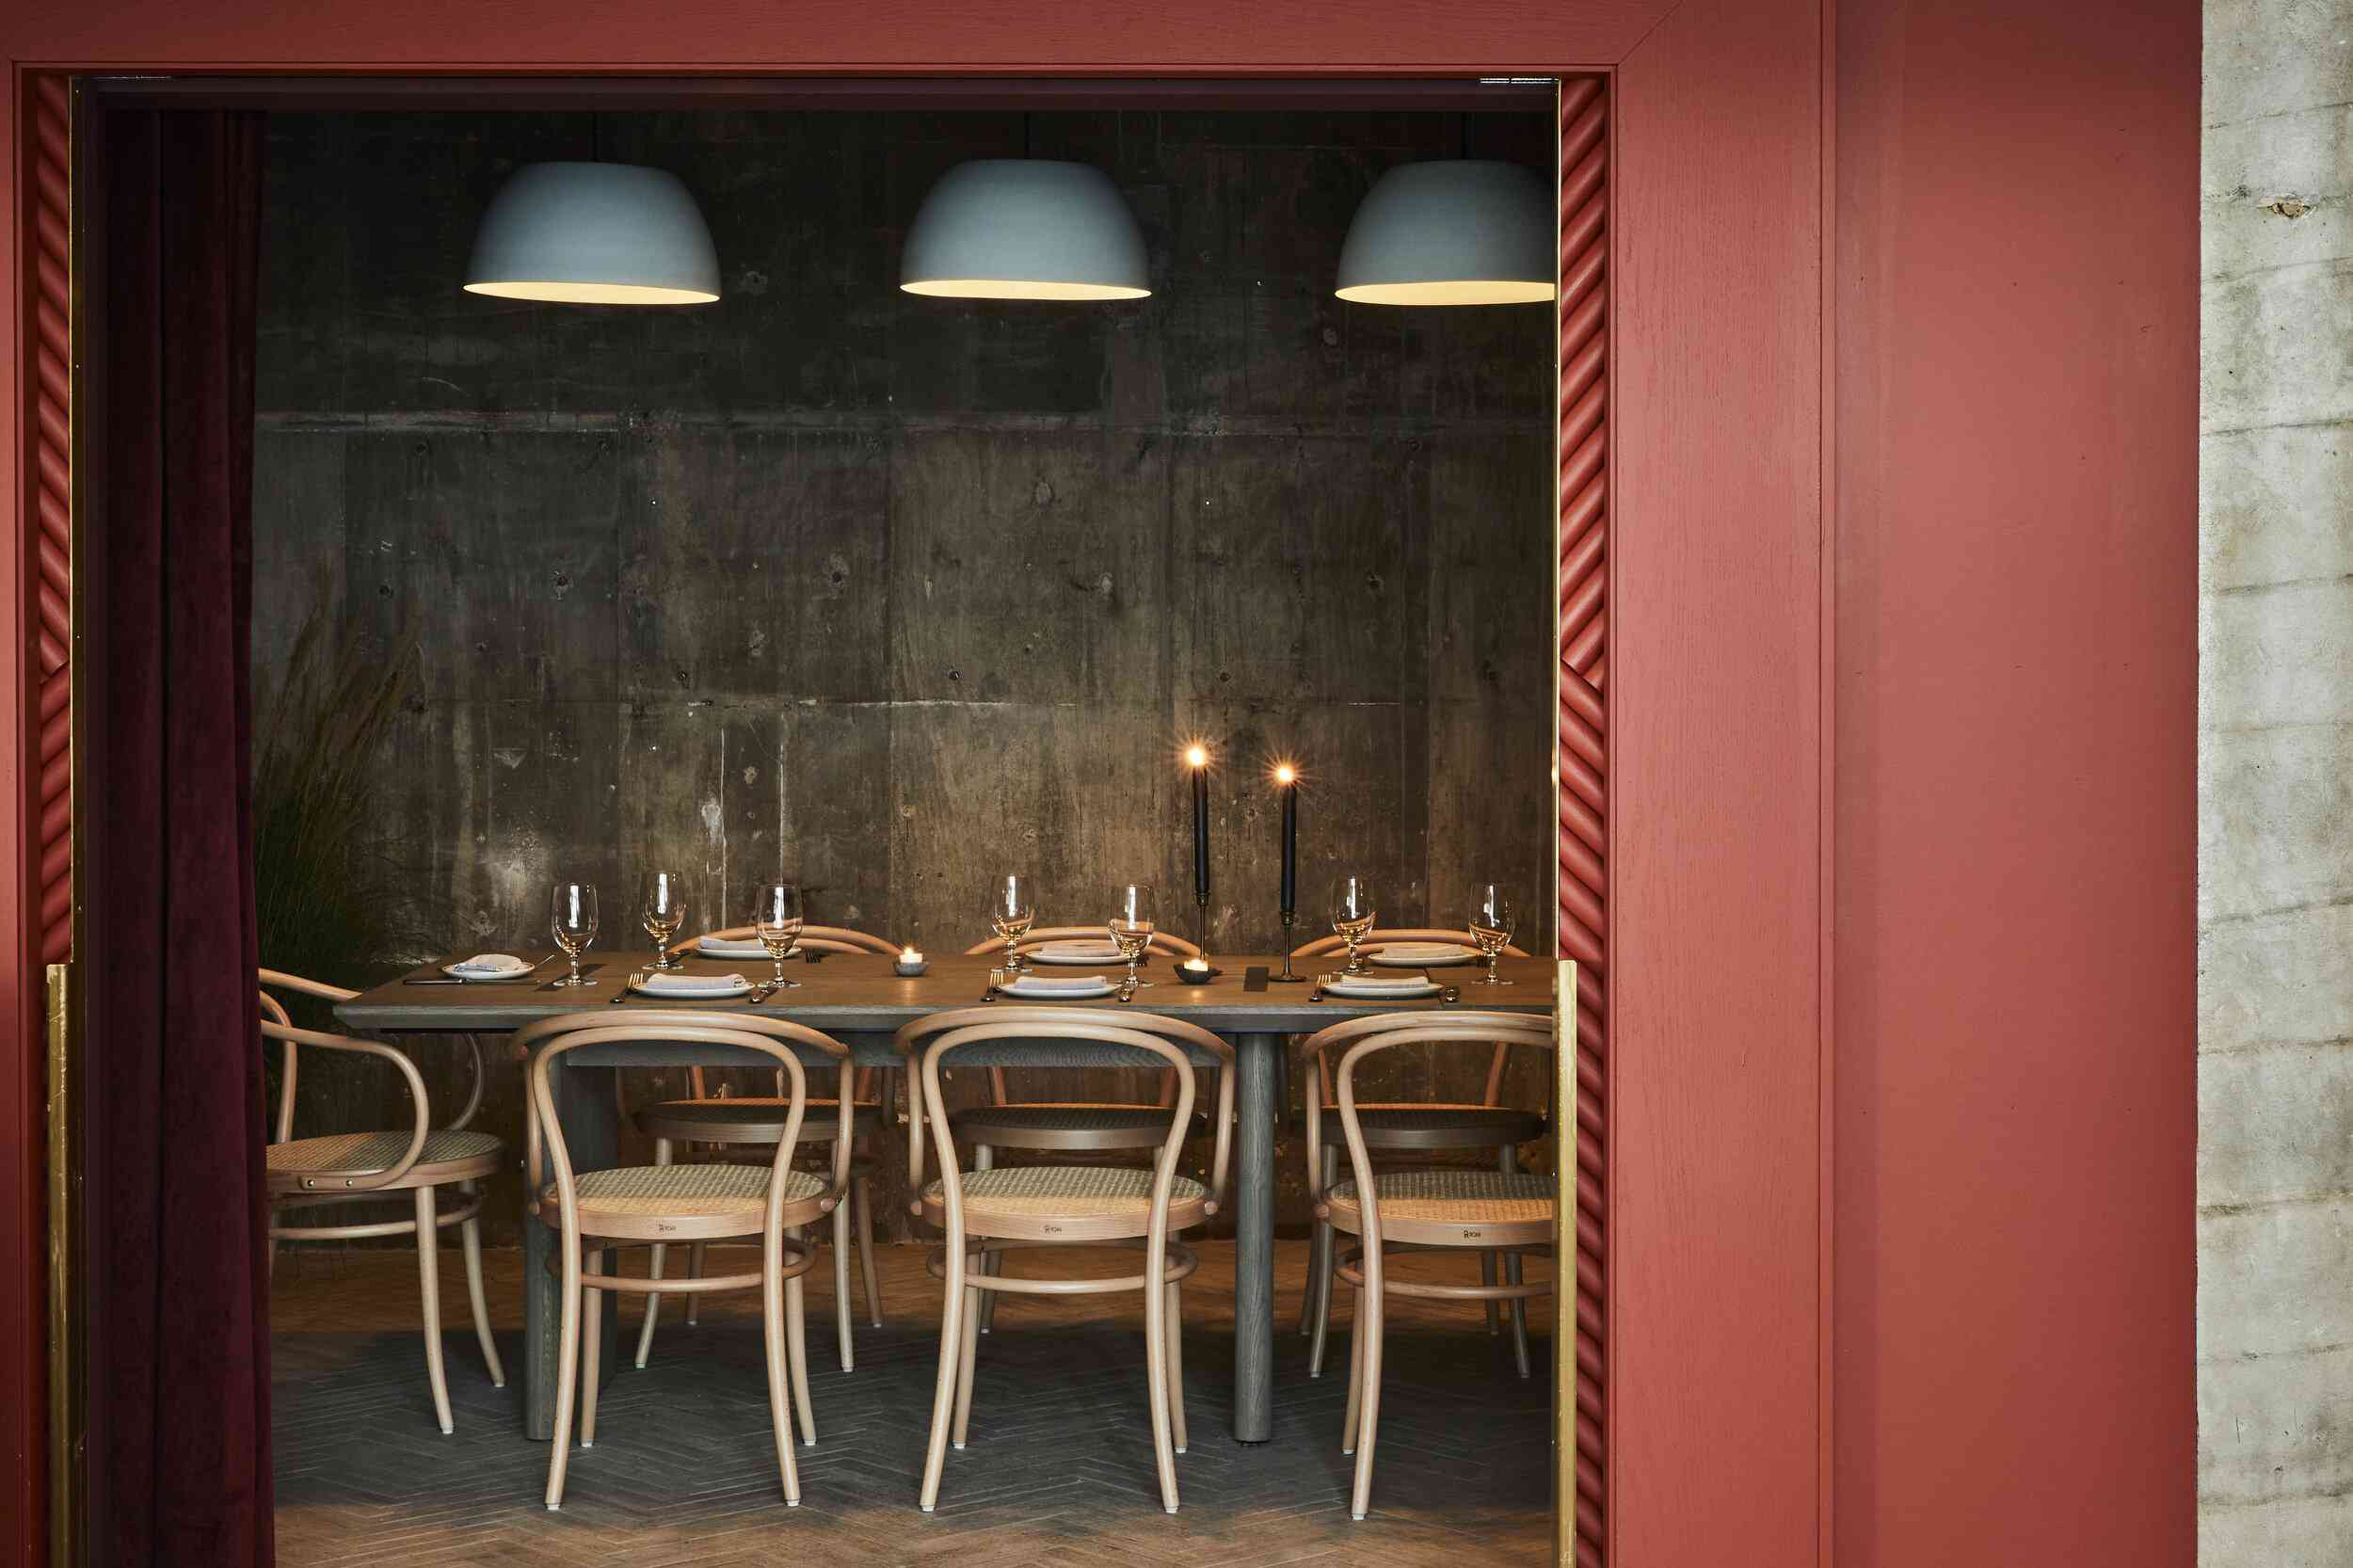 A red wall leading into a low-lit dining room